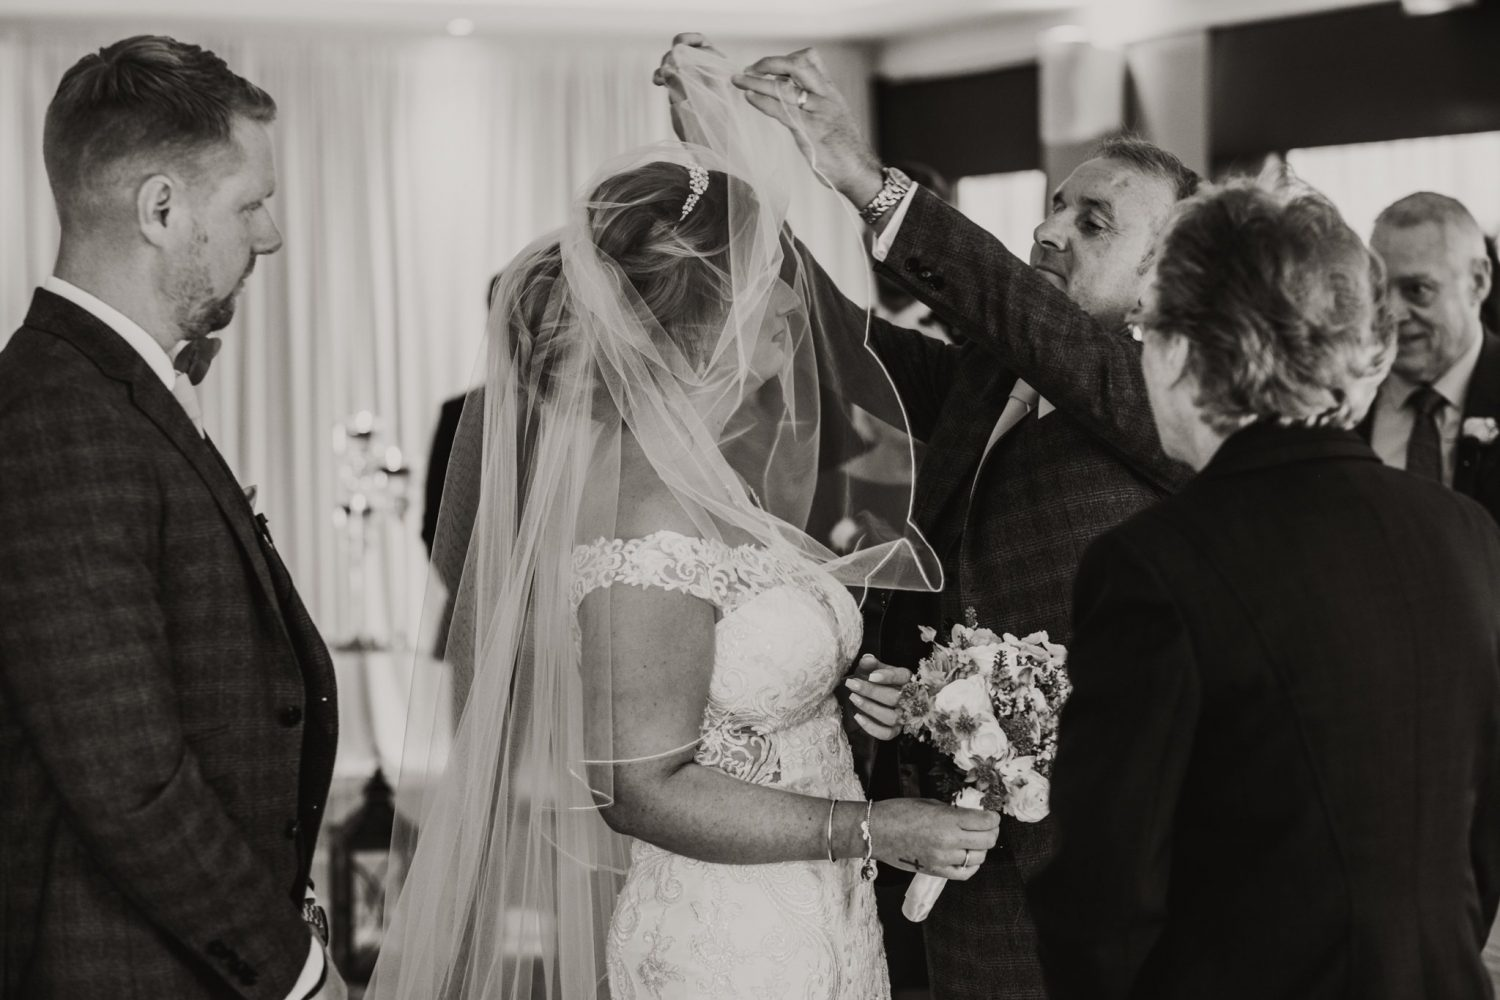 father of the bride lifting the bride's veil